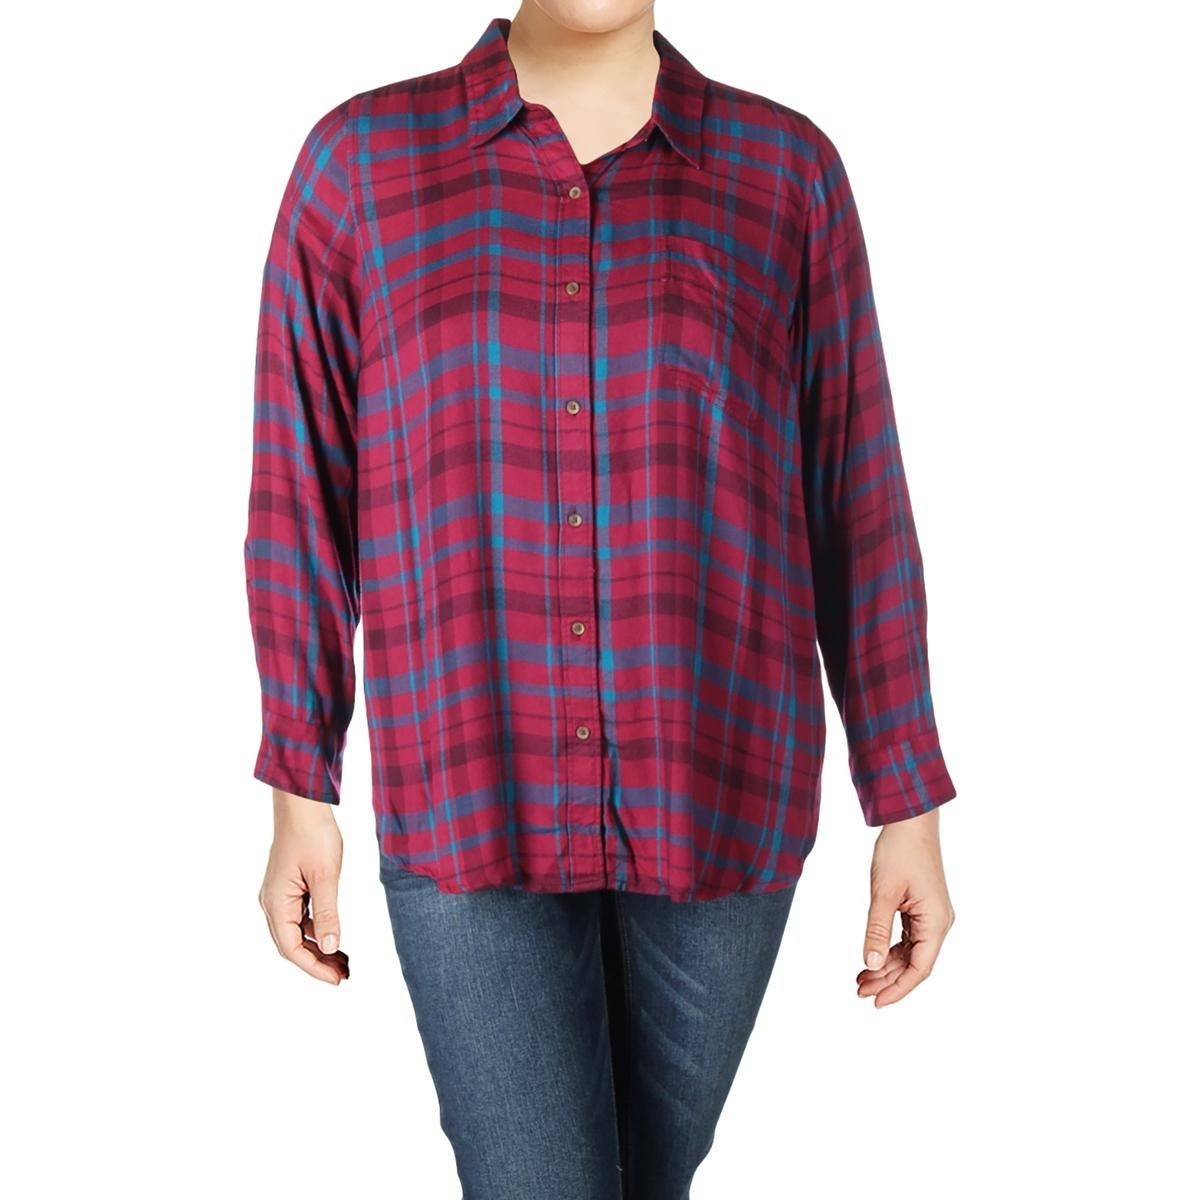 078fd941da3 Shop Lucky Brand Womens Plus Bungalow Button-Down Top Plaid Long Sleeves -  Free Shipping On Orders Over  45 - Overstock.com - 17008551